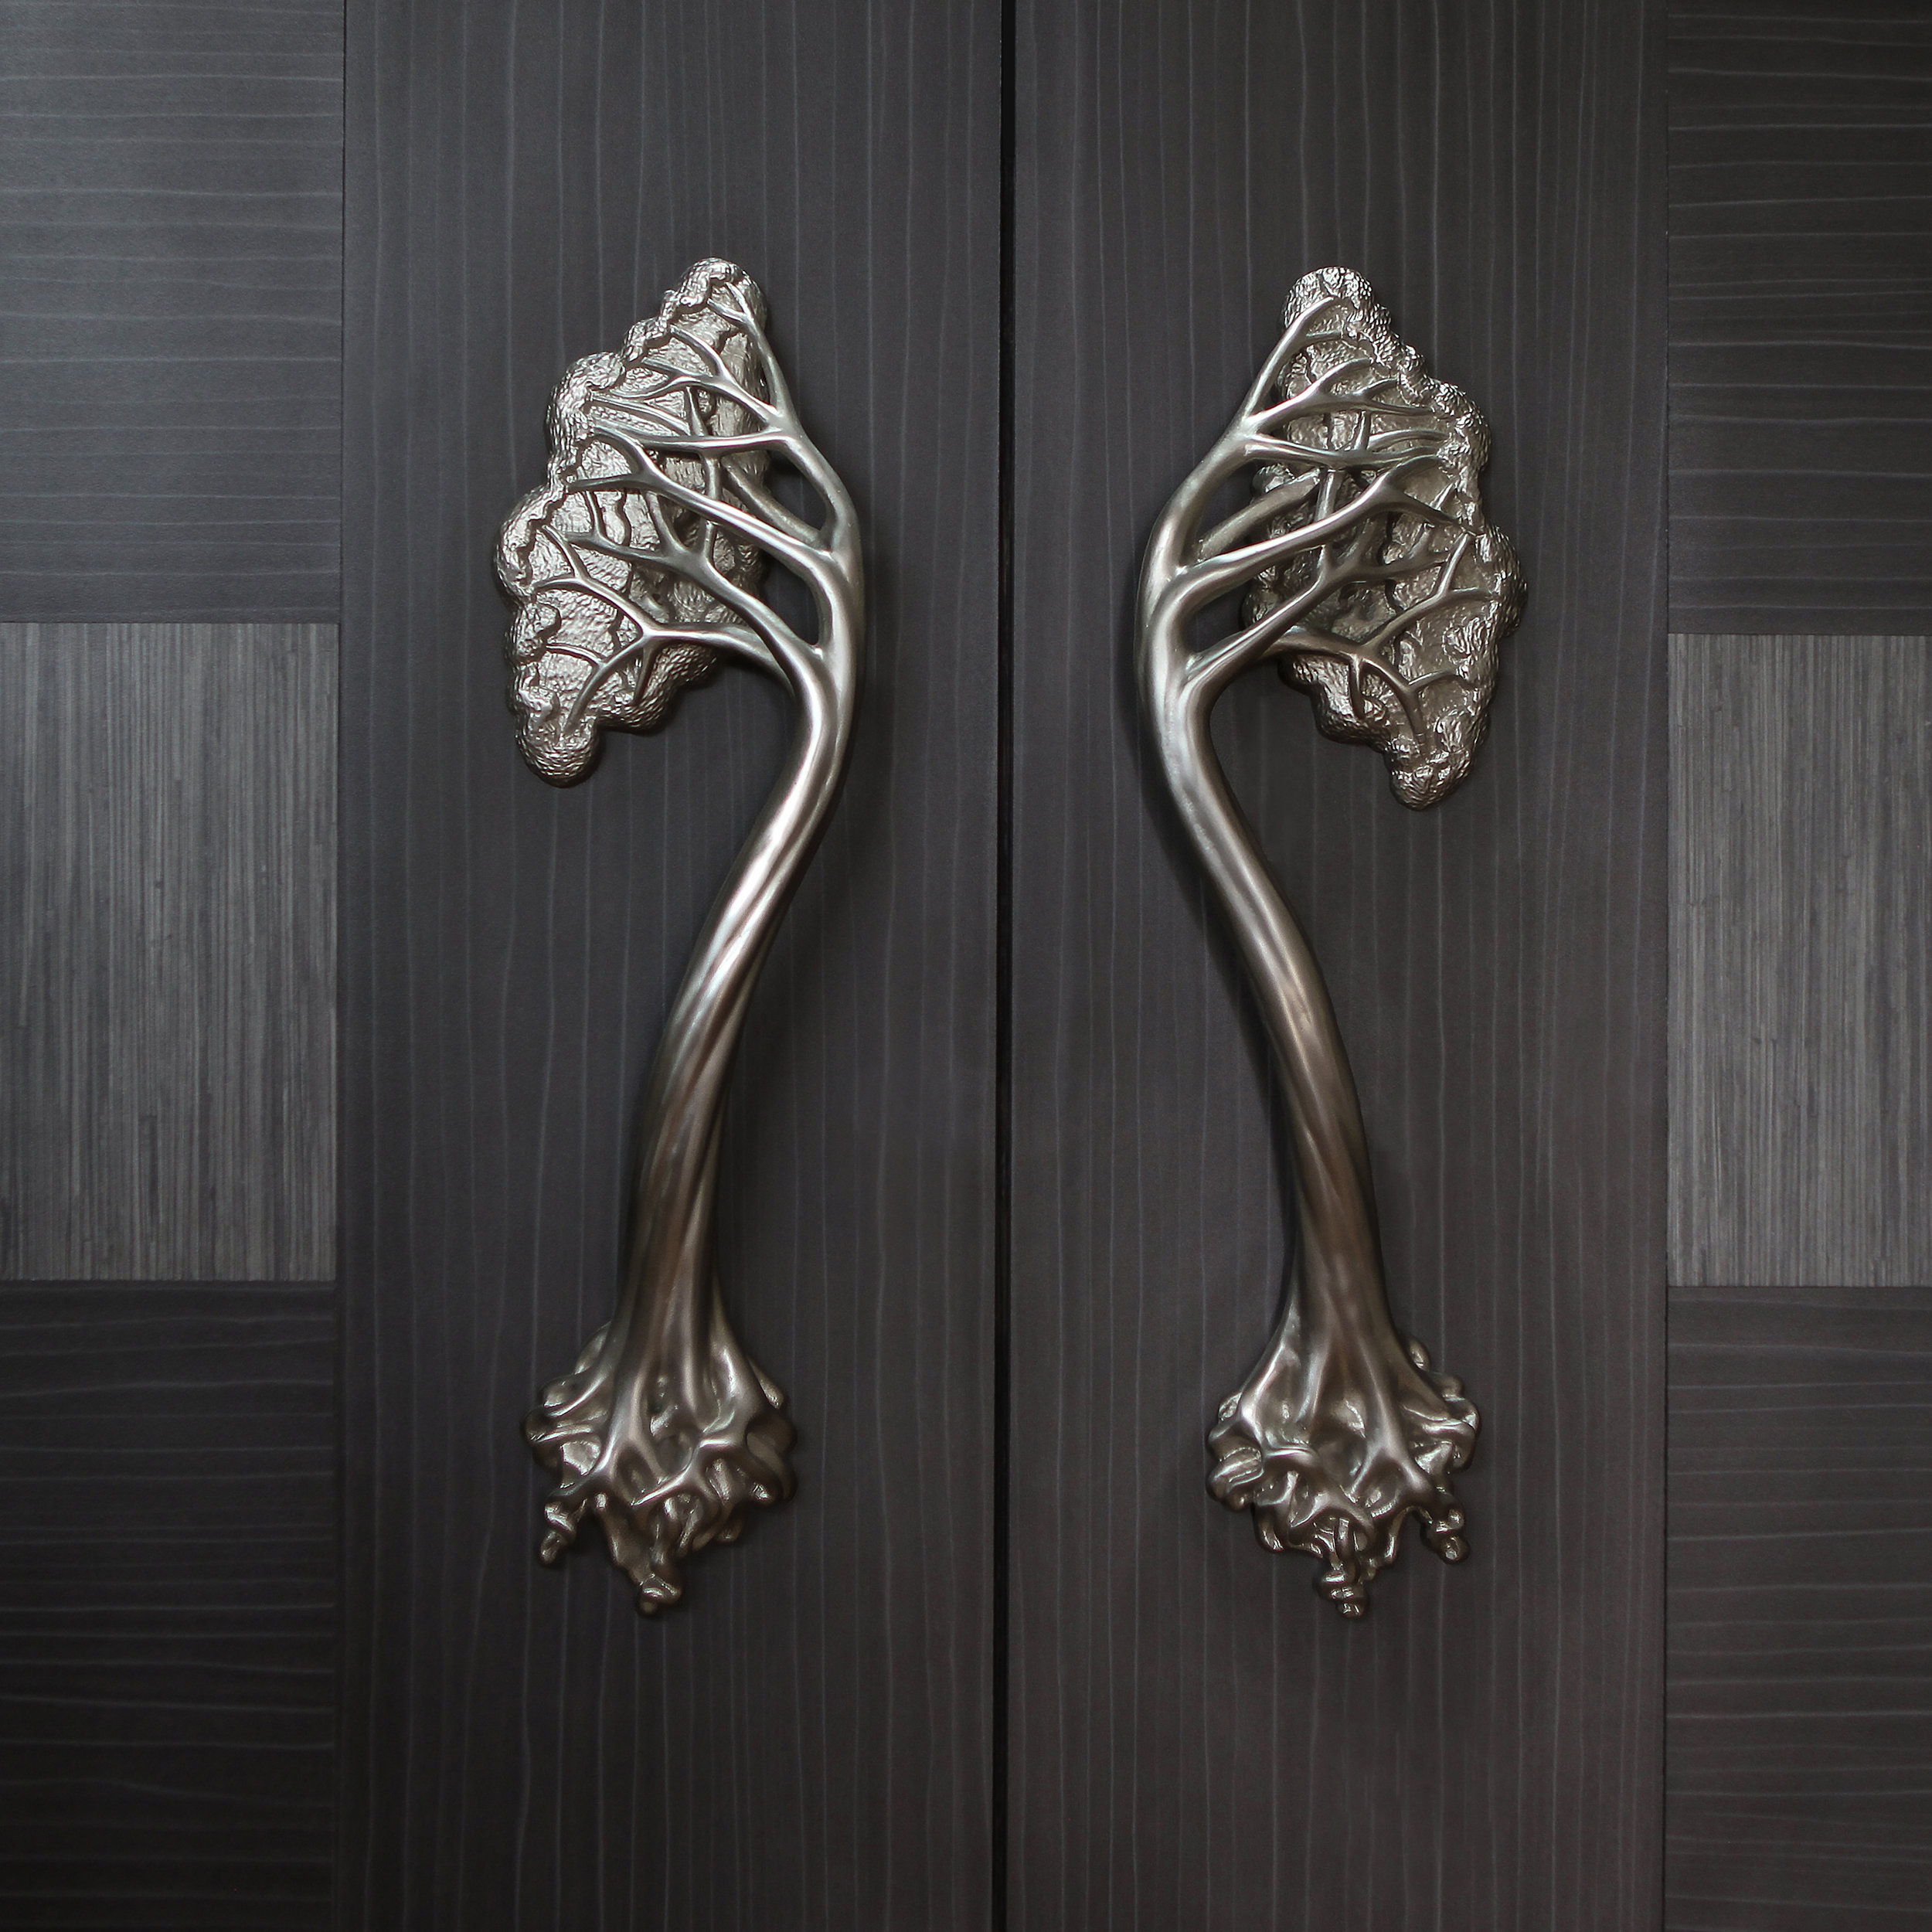 Tree Door Handle A Signature Piece in the Hedgerow Collection